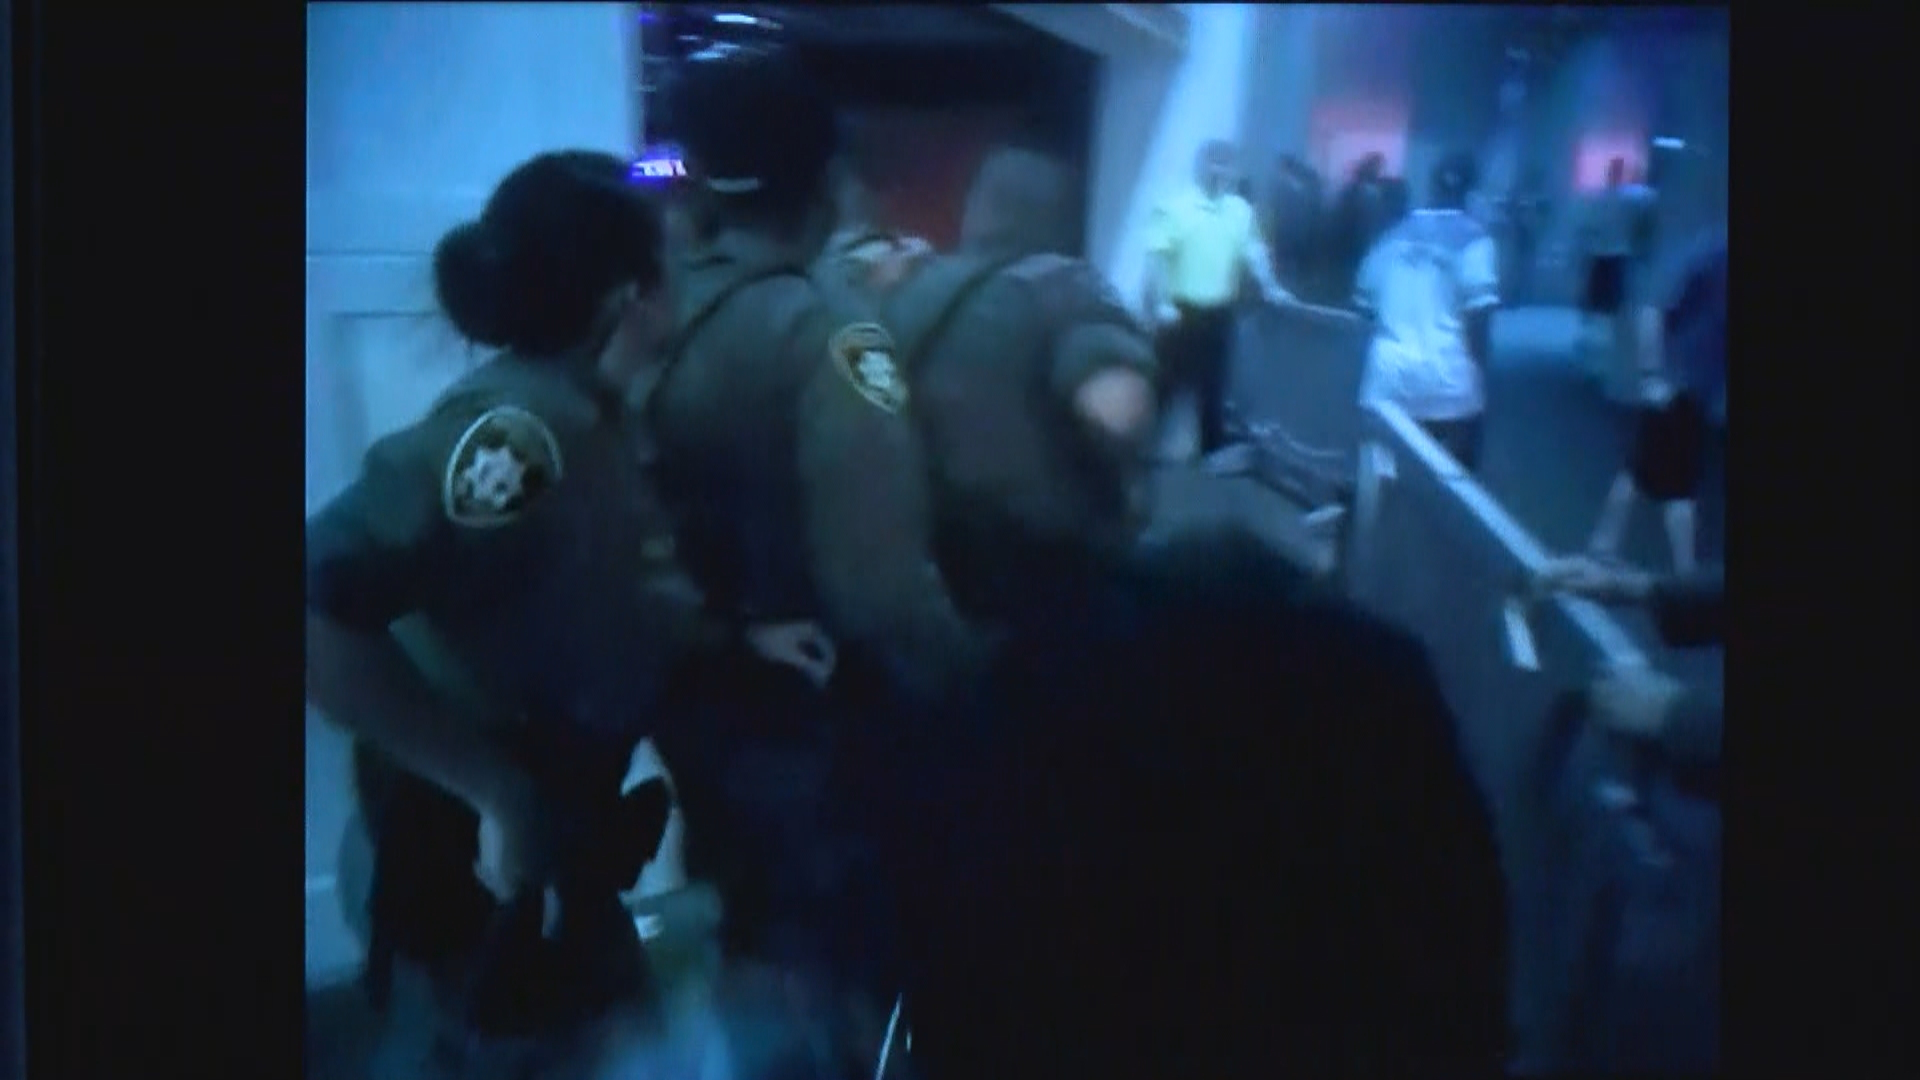 Body camera footage released by the Las Vegas Metropolitan Police Department shows officers entering Drai's Nightclub on Sunday, Aug. 27, 2017, after reports of an active shooter situation. (Photo provided by LVMPD)